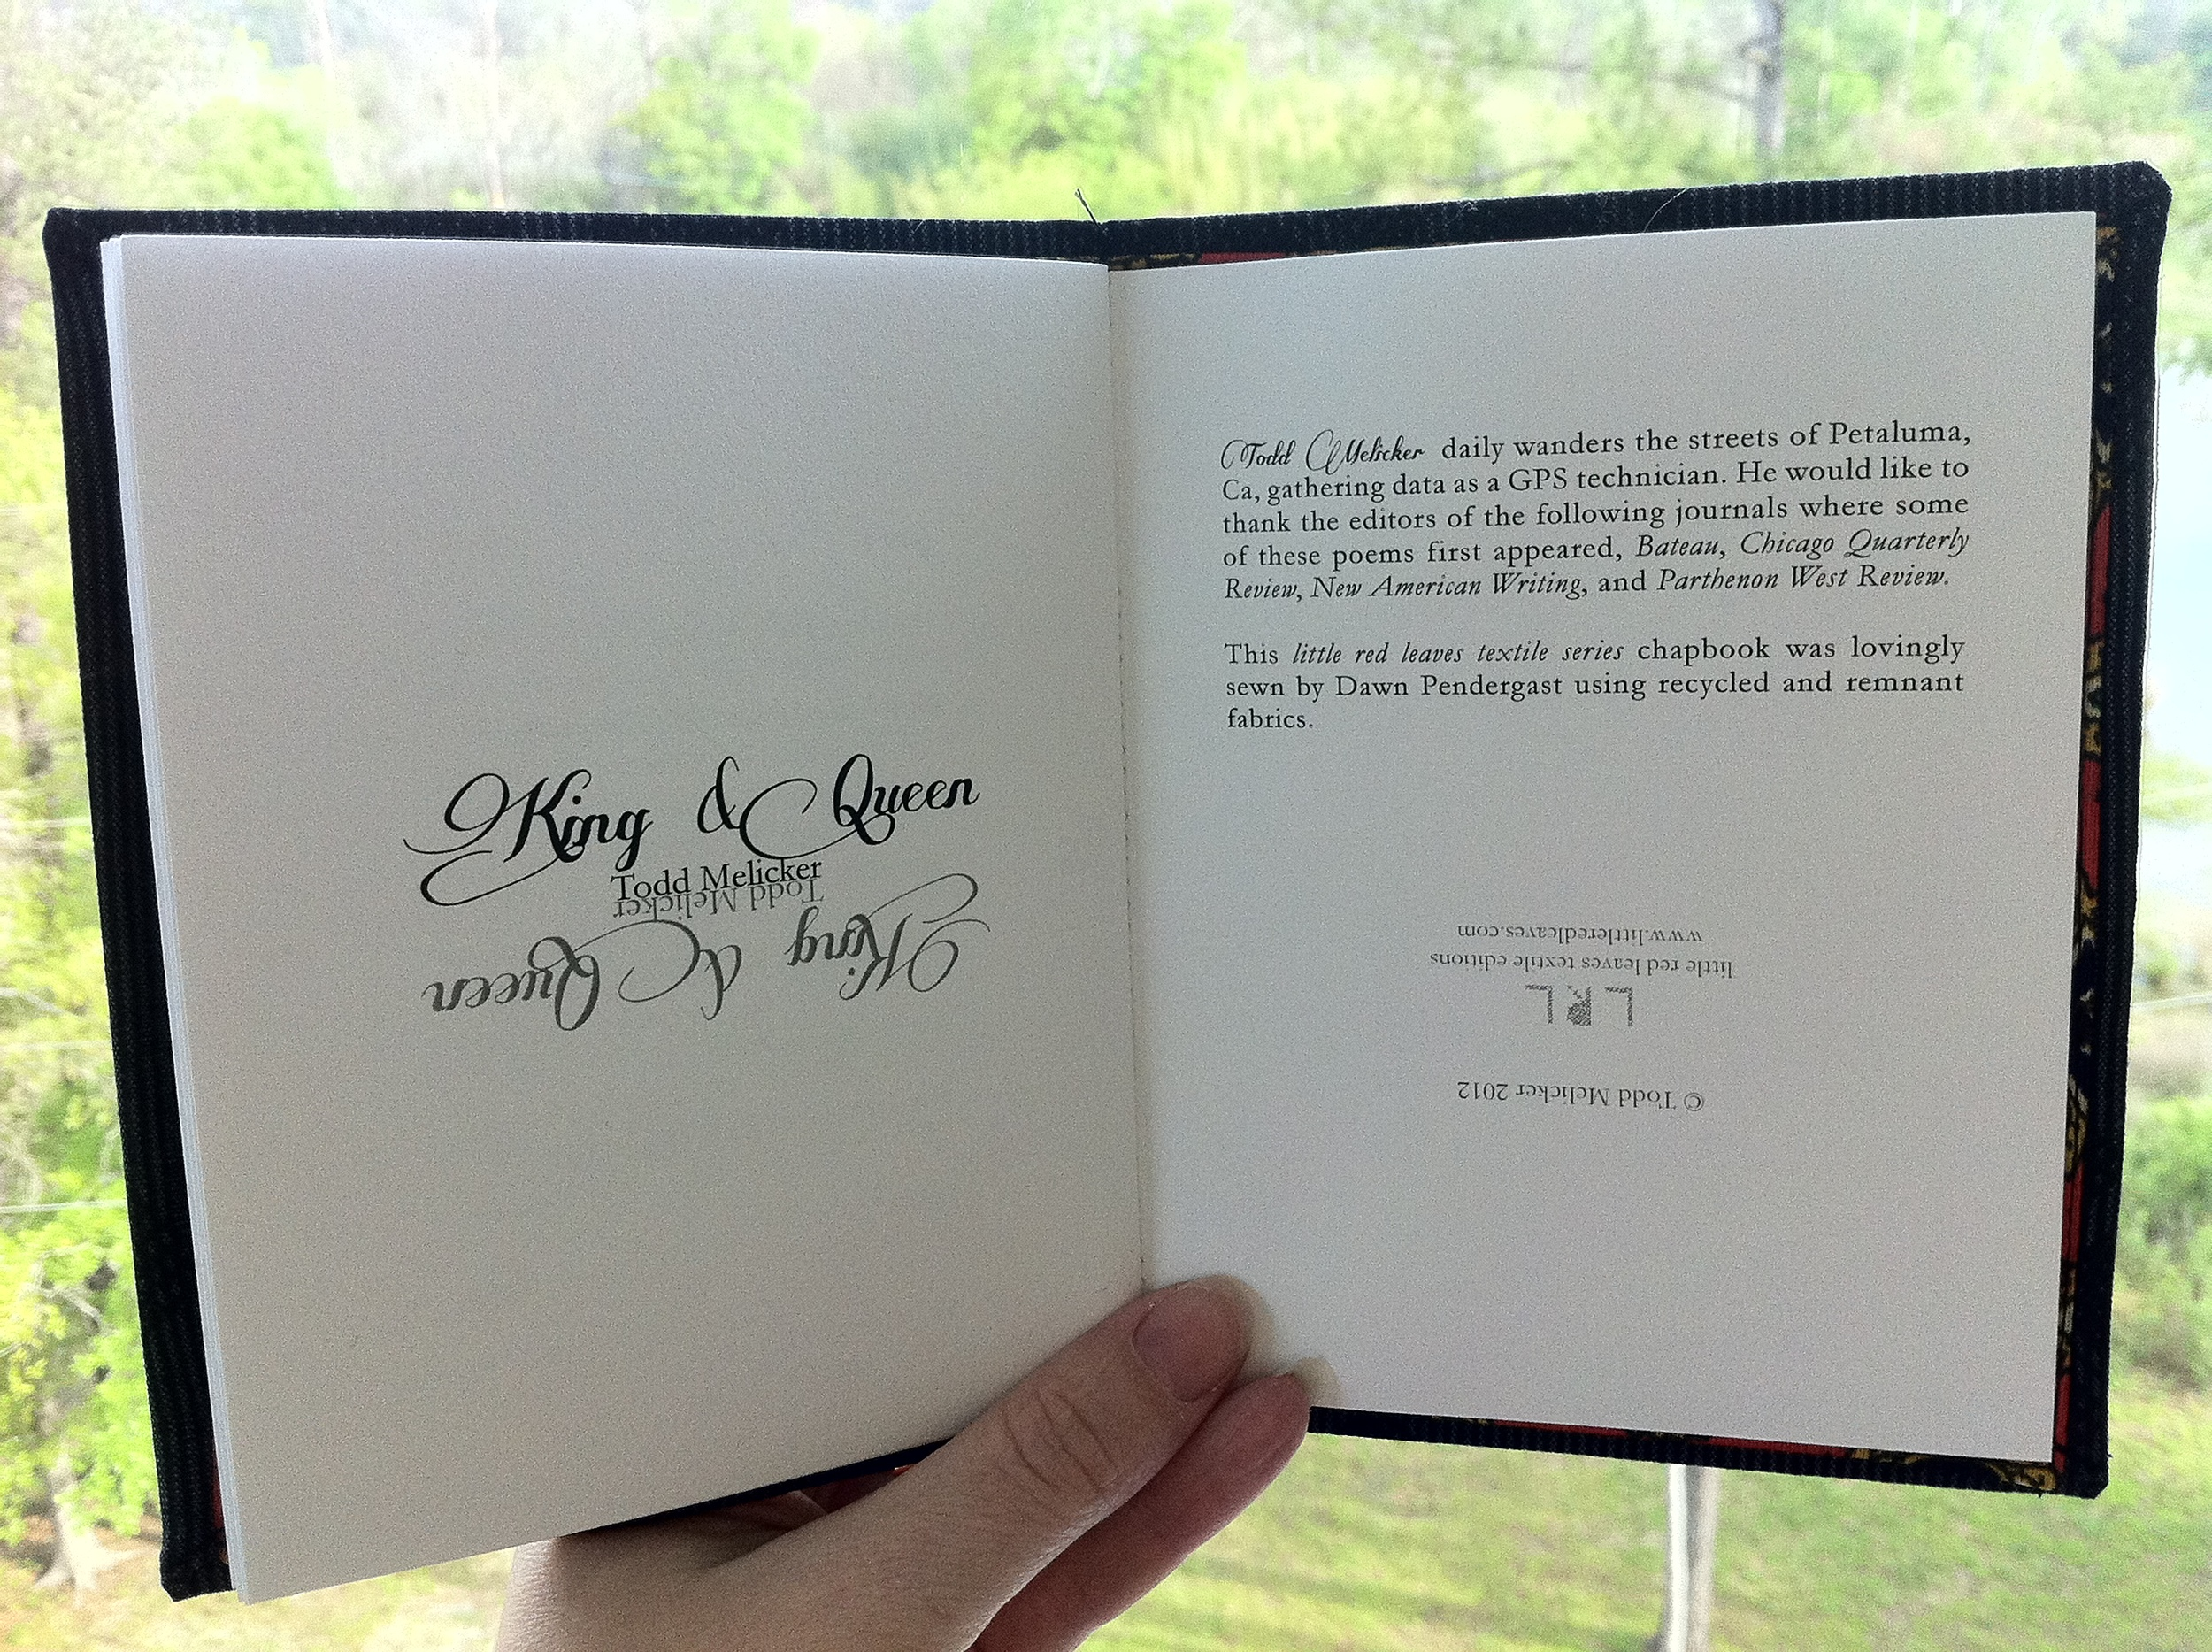 1st Printing (SOLD OUT)